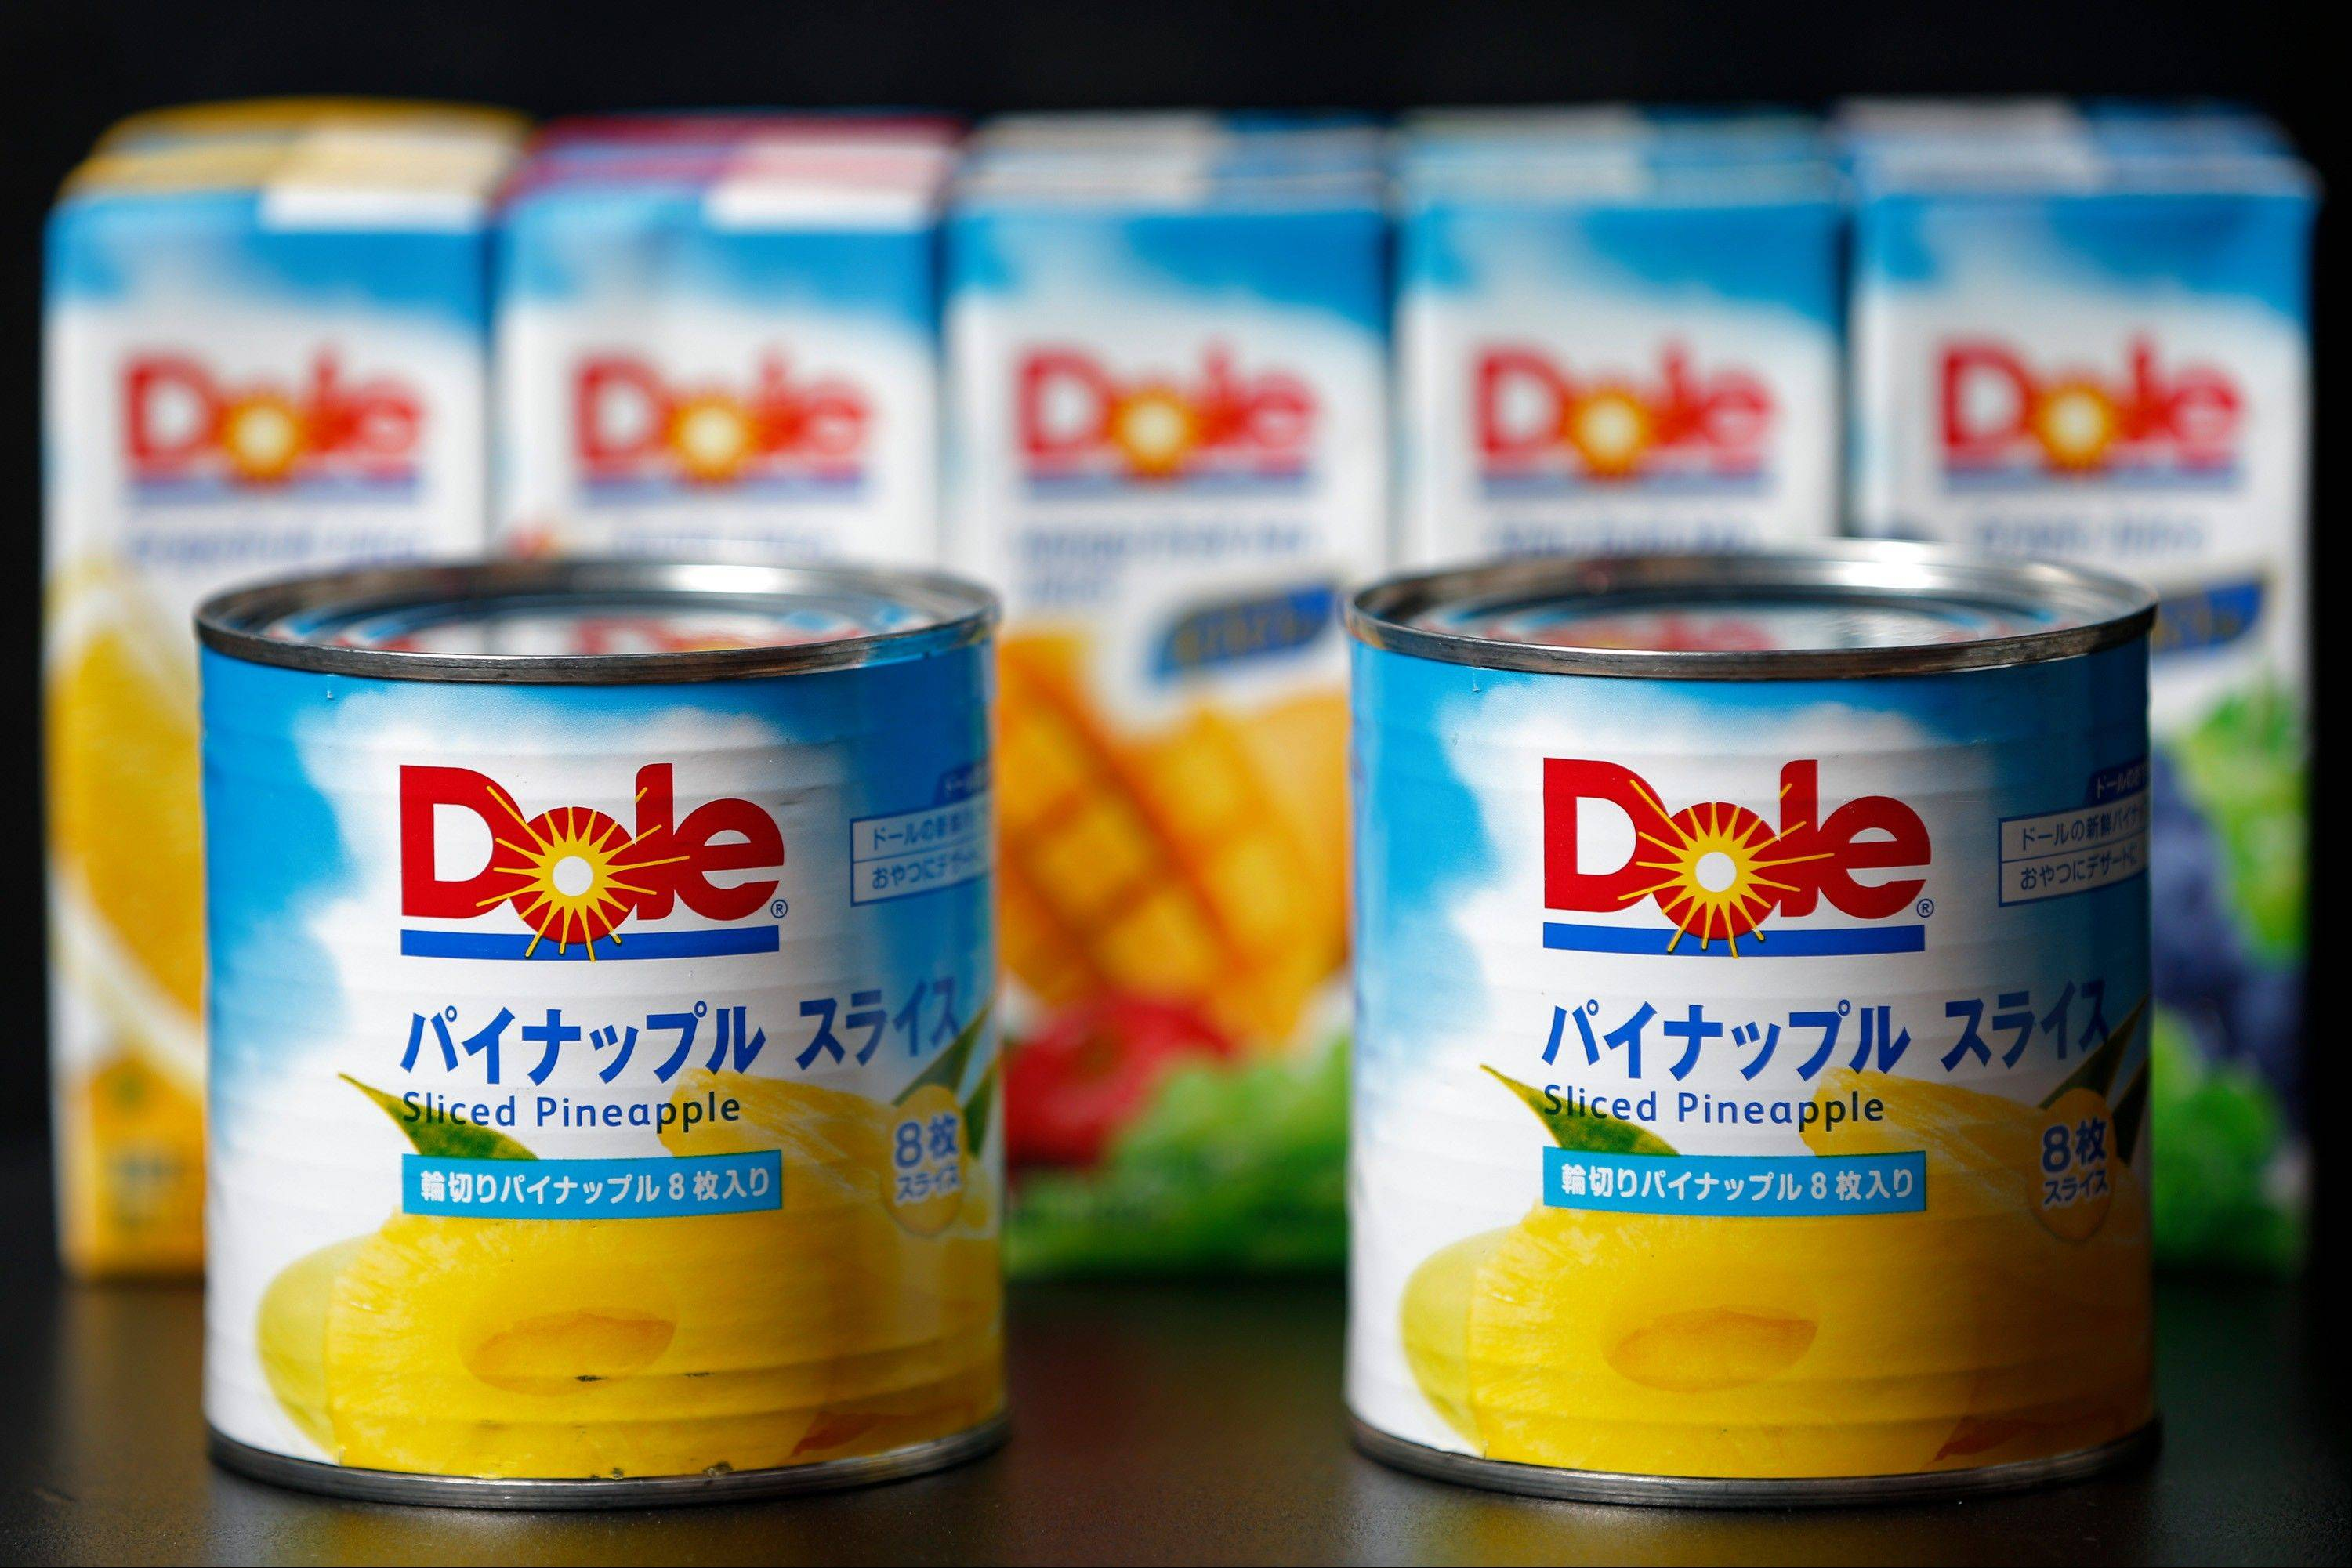 9 Cans of Dole Food Co. sliced pineapple in front of cartons of the company's fruit juice in Soka City, Saitama Prefecture, Japan.